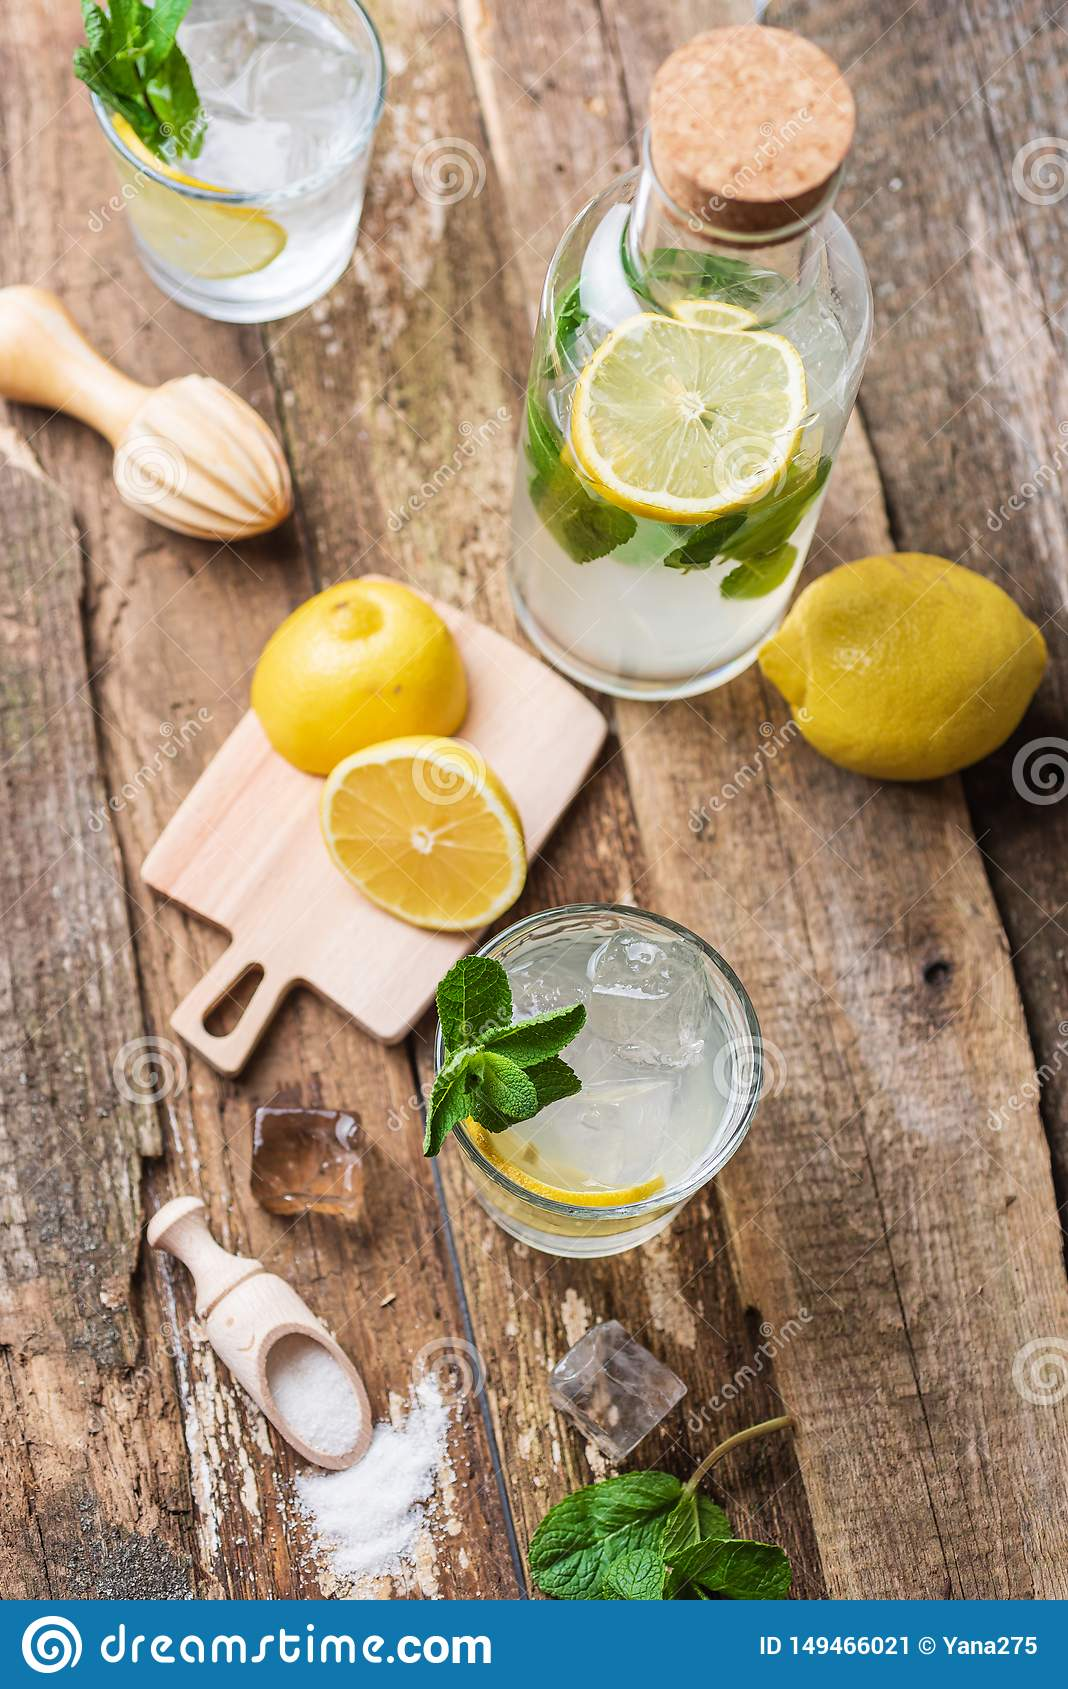 Bottle and two glasses of fresh lemonade with lemon slices, mint and ice on old wooden planks